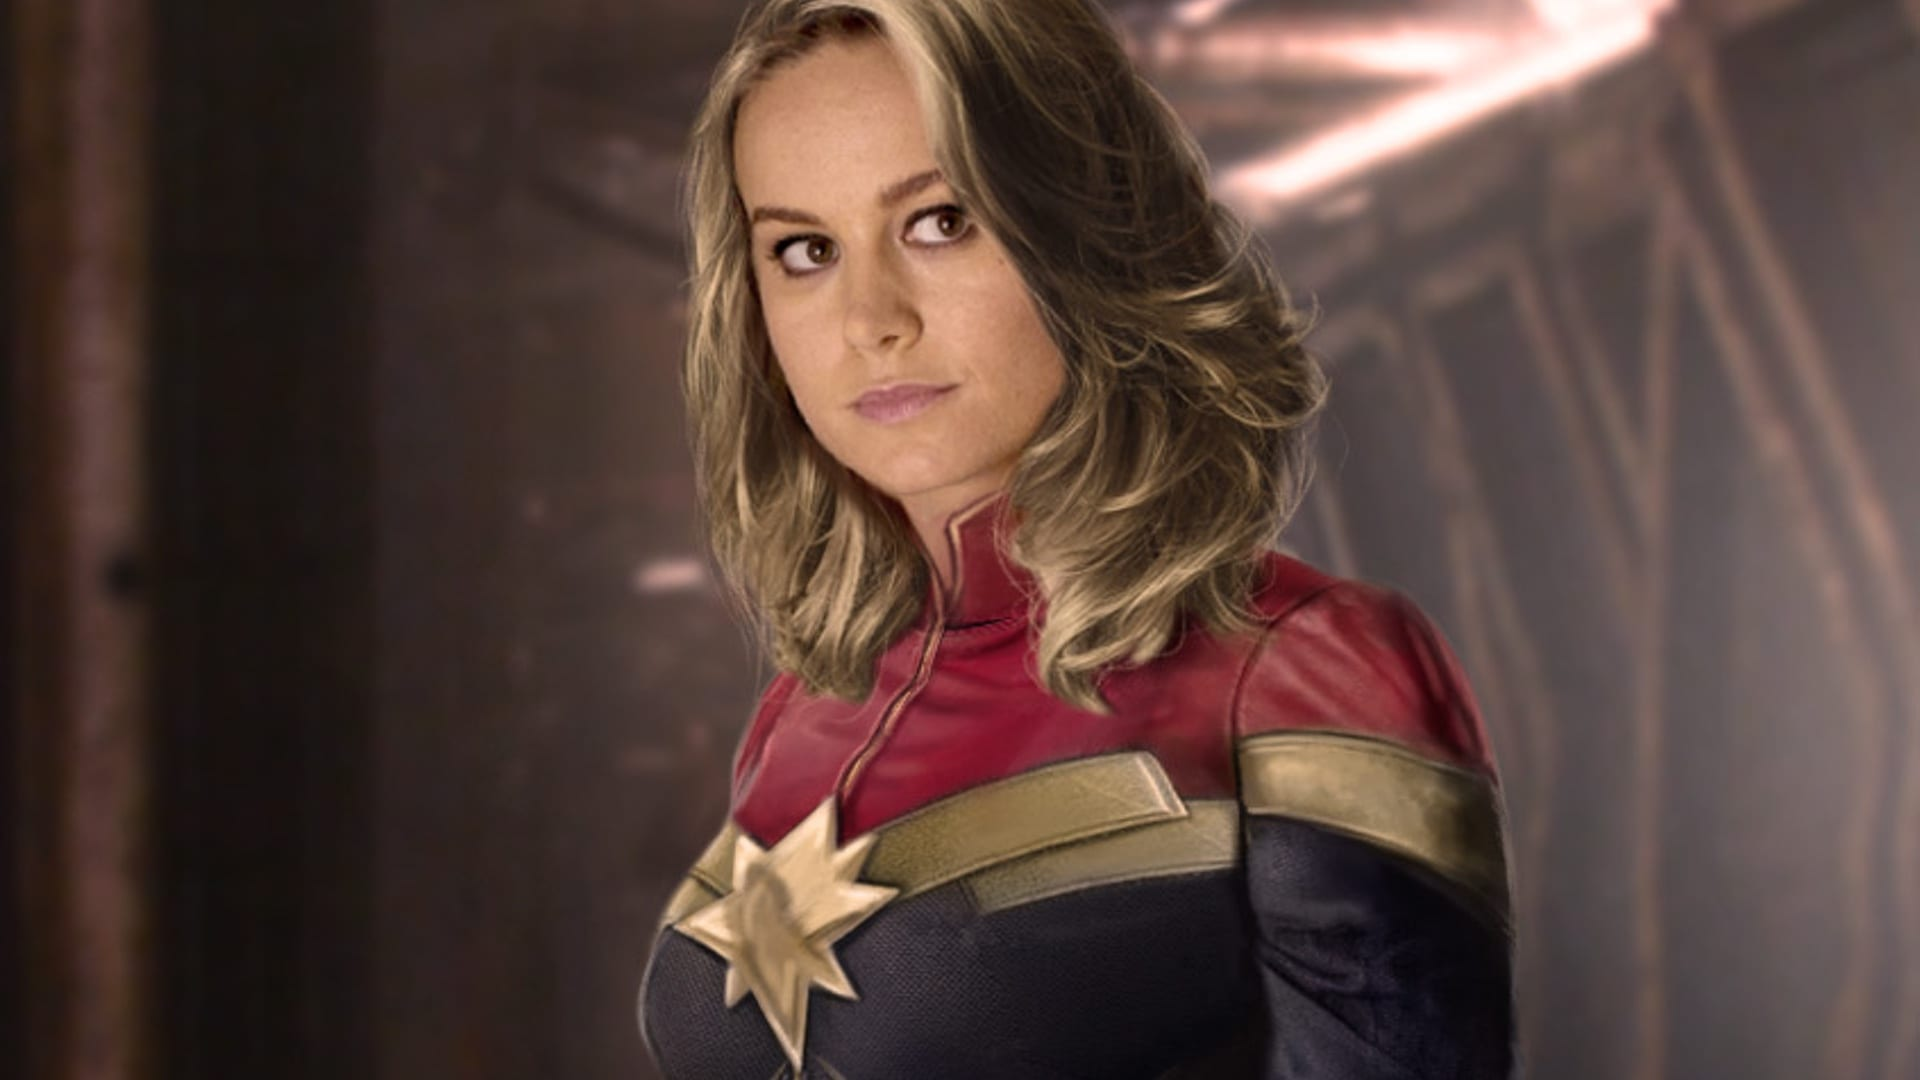 Kapitan Captain Marvel